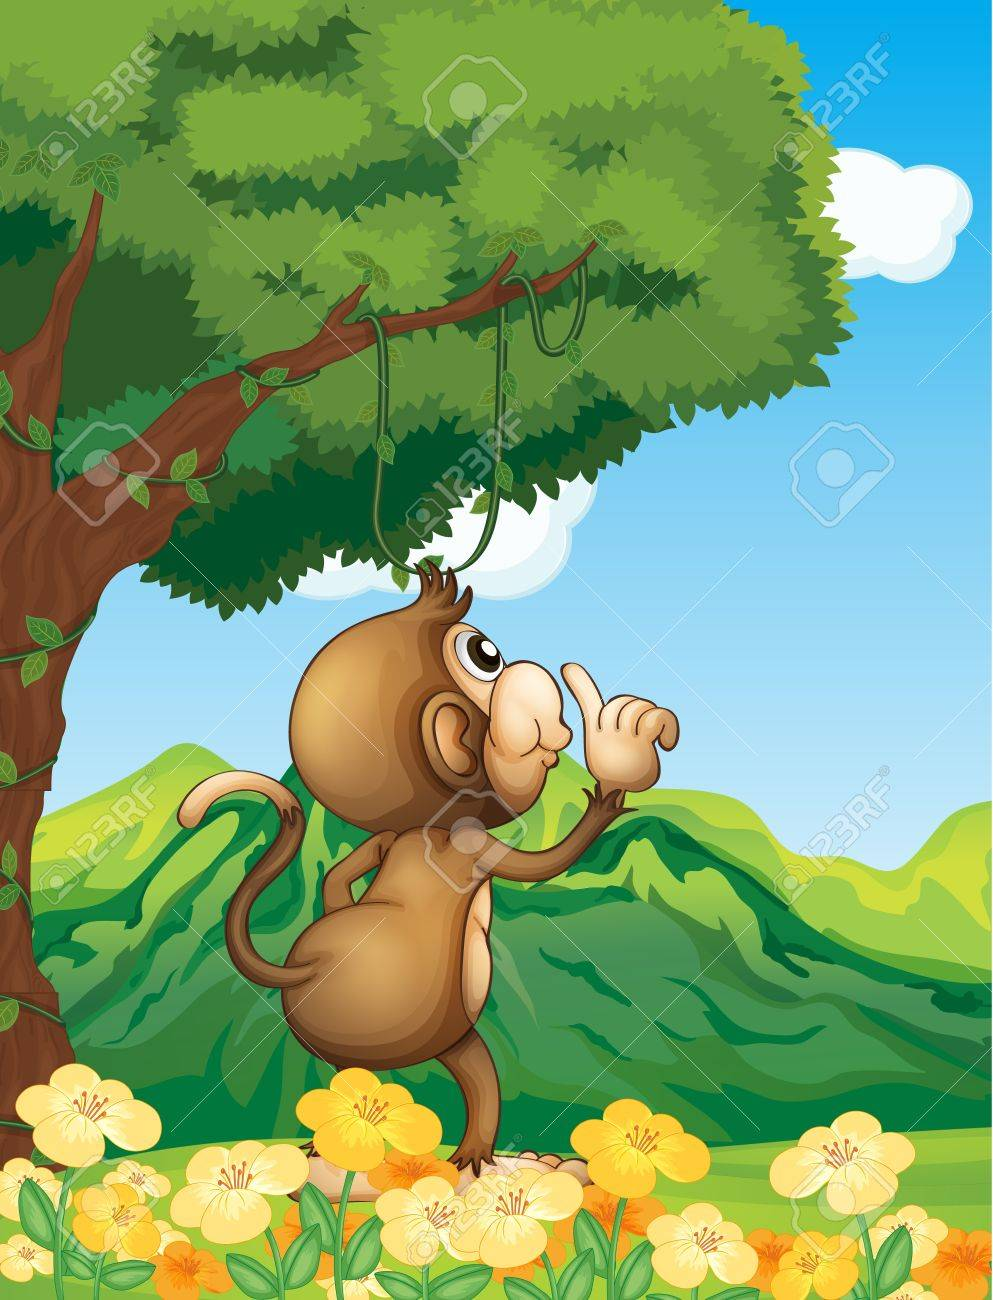 Illustration of a monkey wondering in the forest Stock Vector - 17896470